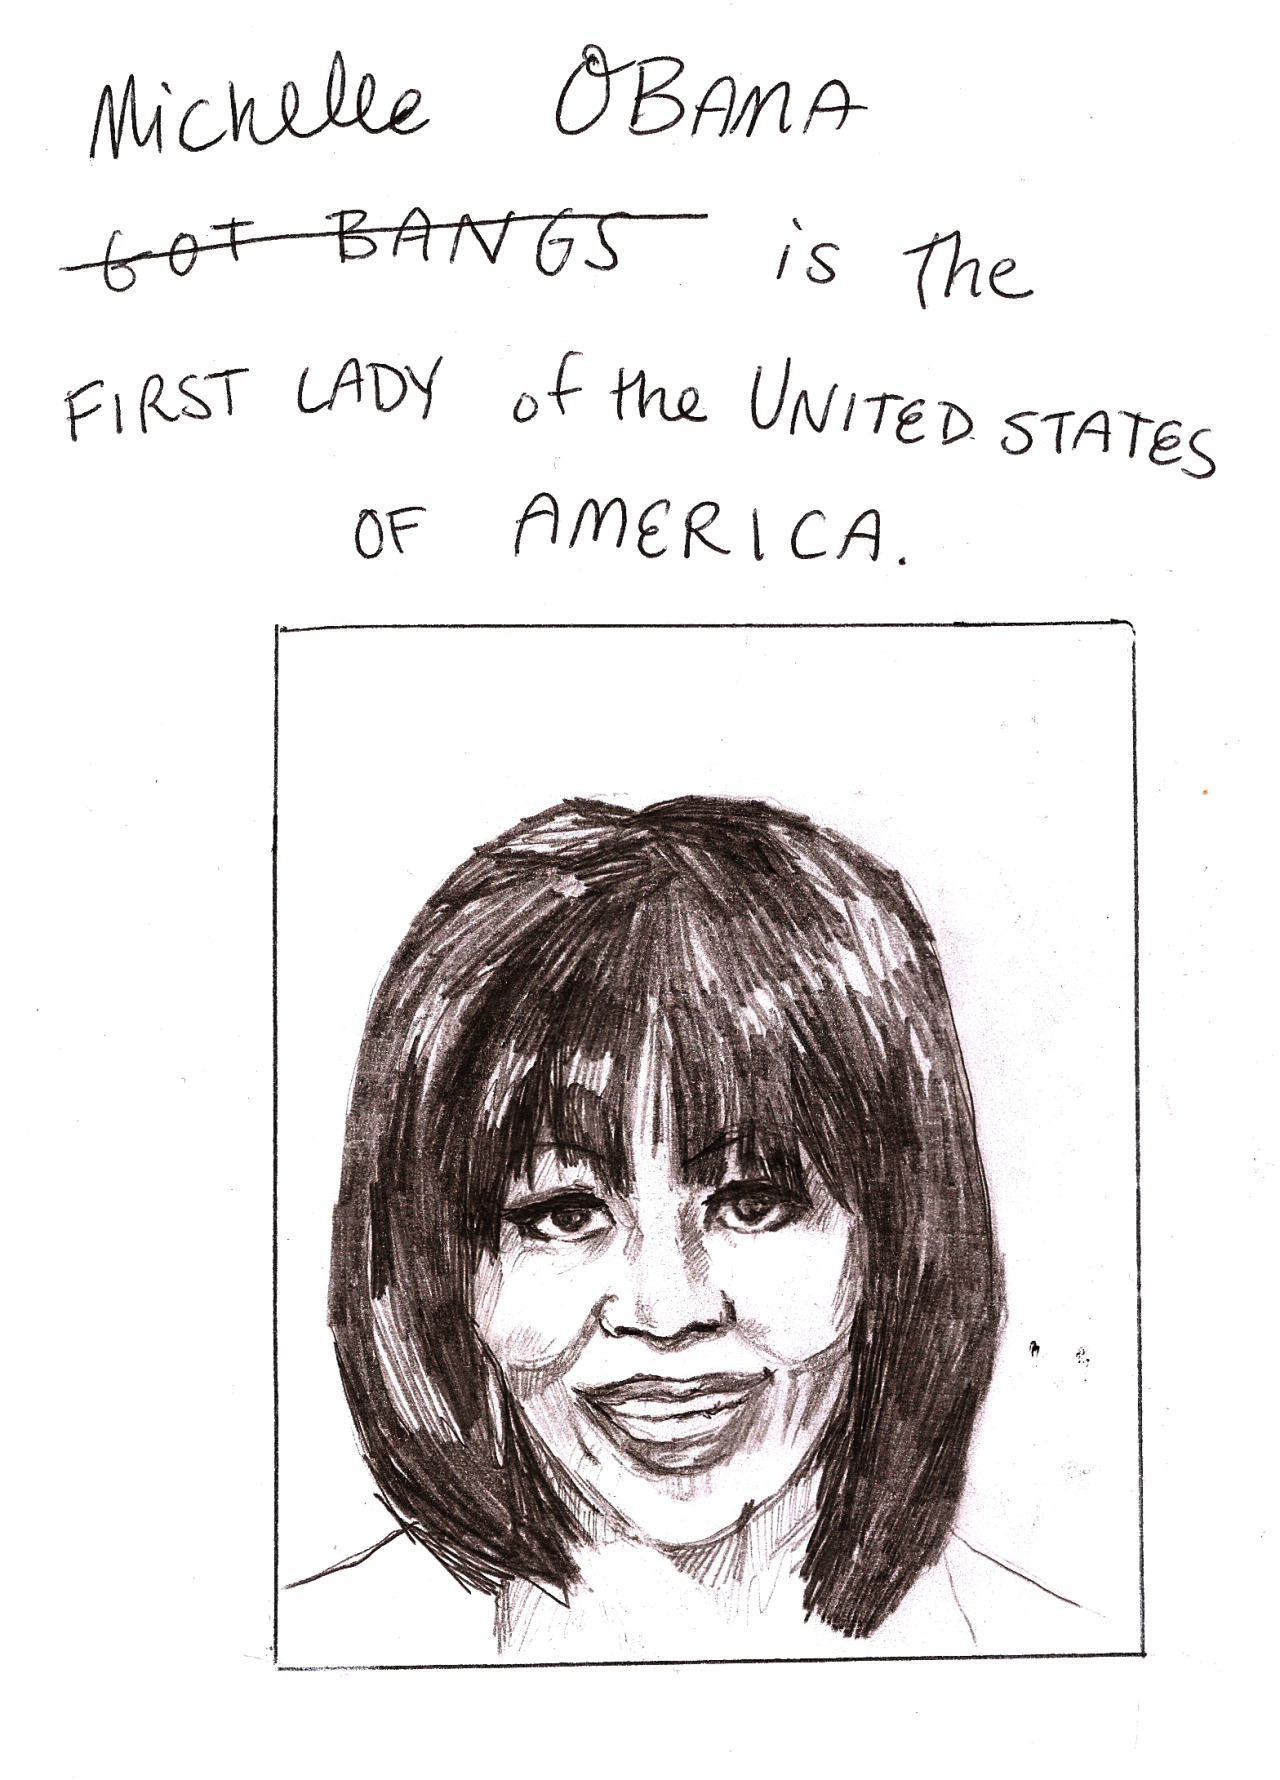 "Michelle Obama Got Bangs Is the First Lady of the United States of America. Here's a list of major news outlets that shared the scoop about Michelle Obama's bangs today: USA Today, The LA Times, The Huffington Post, ABC News, NBC News, CBS News, The Philadelphia Inquirer, and The New York Times (not the style section). With headlines like ""Michelle Obama's Bangs are a Total Shock to The System"" (HuffPo) and ""The World Reacts to Michelle Obama's Bangs,"" (USA Today) these articles would be cringe-worthy/nauseauting/infuriating even on a less auspicious day, as they were on her birthday, when the bangs-buzz began over a photo she took with inaugural citizen co-chair David Hall and posted on her office's new twitter account, @Flotus (genius). But on the day she joined her husband as he rested his hand on Dr. King's bible to be sworn in for a SECOND term of office as President of the most powerful country in the world, you might think, maybe, we'd have more important things to talk about. Listen, I'm just as shallow as the next guy (obviously). Back during the DNC when Michelle gave what was pretty safely the best speech of the entire campaign, I was among many who also found time to discuss her bold, blue-gray nail polish. When I received an email from Barack (don't you love those) on January 18th with the subject ""Morgan, Say You're In,"" I opened it to find a video Michelle recorded to launch the administration's new ""grassroots organization"" Organizing for Action, and before clicking play, I immediately g-chatted a friend to say ""ooh michelle obama got bangs. haha lolz. im a bad feminist."" I am not a great feminist, and I'll cop to that. But I am also not a major news outlet.  I don't doubt that Michelle herself agonized over the choice to cut her hair, as only the First Lady is expected to do. I just wish the media had also agonized over their decision to go ape-shit about it. Unfortunately, the public reaction to Michelle's bang trim is perfectly in keeping with the artificial importance that has always been placed on women's White House style, and for her part, Michelle has handled the stakes well. I suppose she deserves some form of recognition for gracefully navigating such a fucked up minefield of complete bullshit that has nothing to do with anything. On the other hand, she also reserves the right to exercise her personal expression through style, as all red-blooded capitalists are free to do. There has been plenty of thoughtful commentary about the impulse to trivialize fashion while other forms of expression are elevated, as the following quote from the essay ""Fashion is a Feminist Issue"" contends: ""It is the height of irony that women are valued for our looks, encouraged to make ourselves beautiful and ornamental… and are then derided as shallow and vain for doing so. And it's a subtle but definite form of sexism to take one of the few forms of expression where women have more freedom, and treat it as a form of expression that's inherently superficial and trivial. Like it or not, fashion and style are primarily a women's art form. And I think it gets treated as trivial because women get treated as trivial."" So here we are. Michelle Obama, you look great. I also know you are a brilliant and gifted speaker, a mother, an attorney, and an advocate for military families, poverty awareness, volunteerism, and nutrition. But even your own husband rather cheekily referred to your haircut as ""the most significant event of the inauguration,"" so I'm not going to pretend that the way you look has nothing to do with how much America loves you. In fact, when I think about the number of Pakistani citizens killed by predator drones since Barack took office, (between 1700 and 3050 people), your bangs are a nice palliative. But I still think that on this day, of all days, we should have more important things to talk about. At the very least, we have Beyonce's performance to discuss."